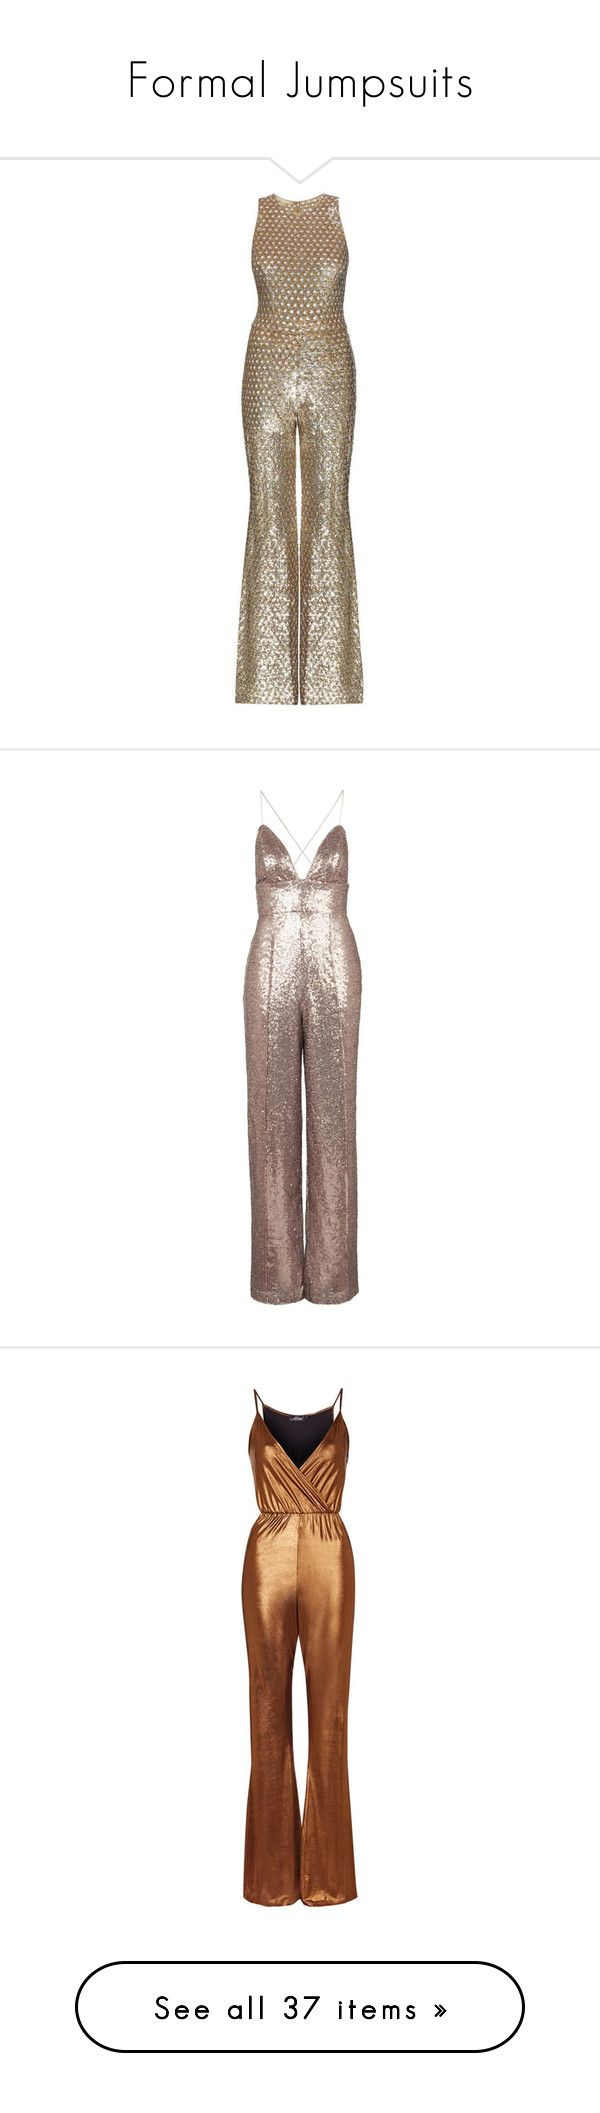 """Formal Jumpsuits"" by mscody ❤ liked on Polyvore featuring jumpsuits, jumpsuit, dresses, metallic, jump suit, metallic jumpsuit, michael kors jumpsuit, brown jumpsuit, embellished jumpsuit and rompers"